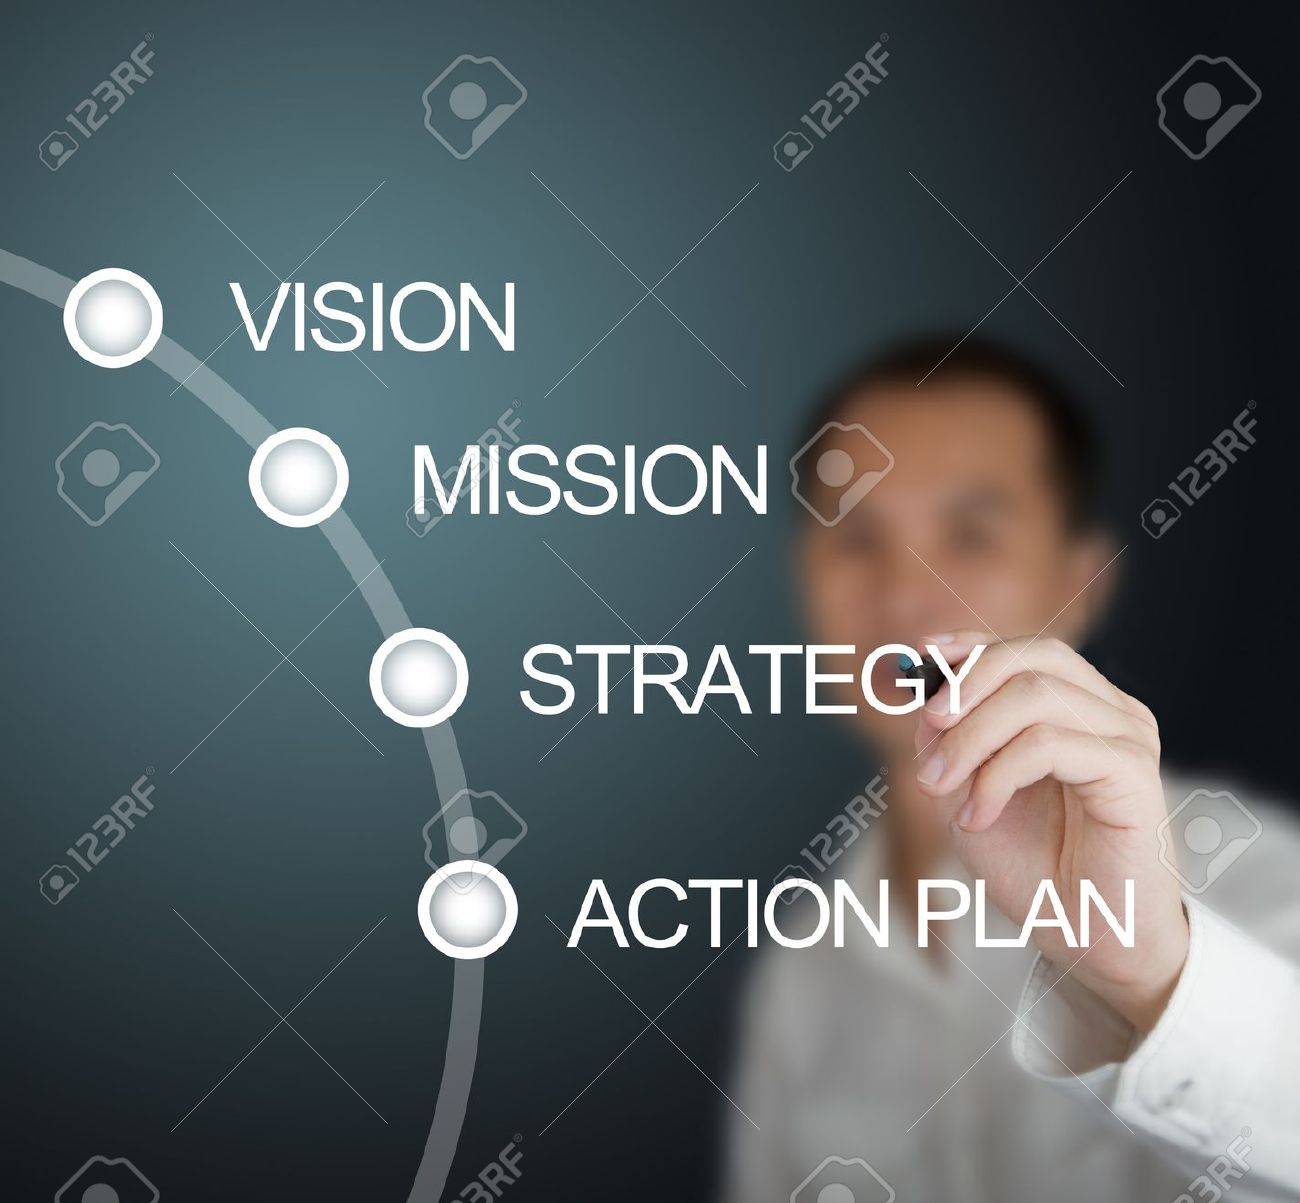 business man writing business concept vision - mission - strategy - action plan on whiteboard Stock Photo - 13225086